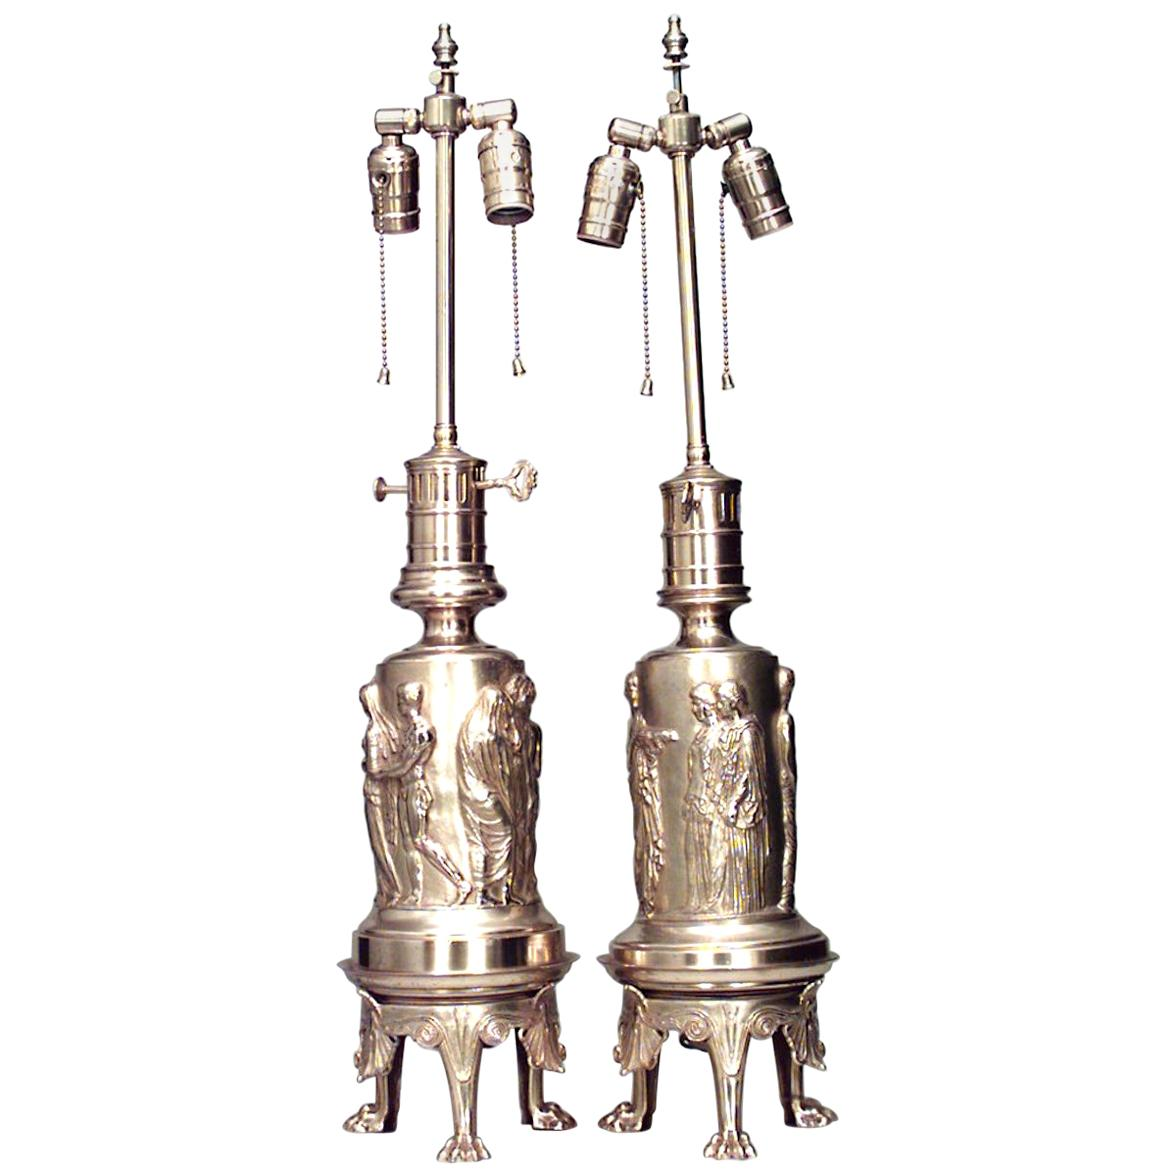 Pair of English Regency Style Bronze Dore Table Lamps